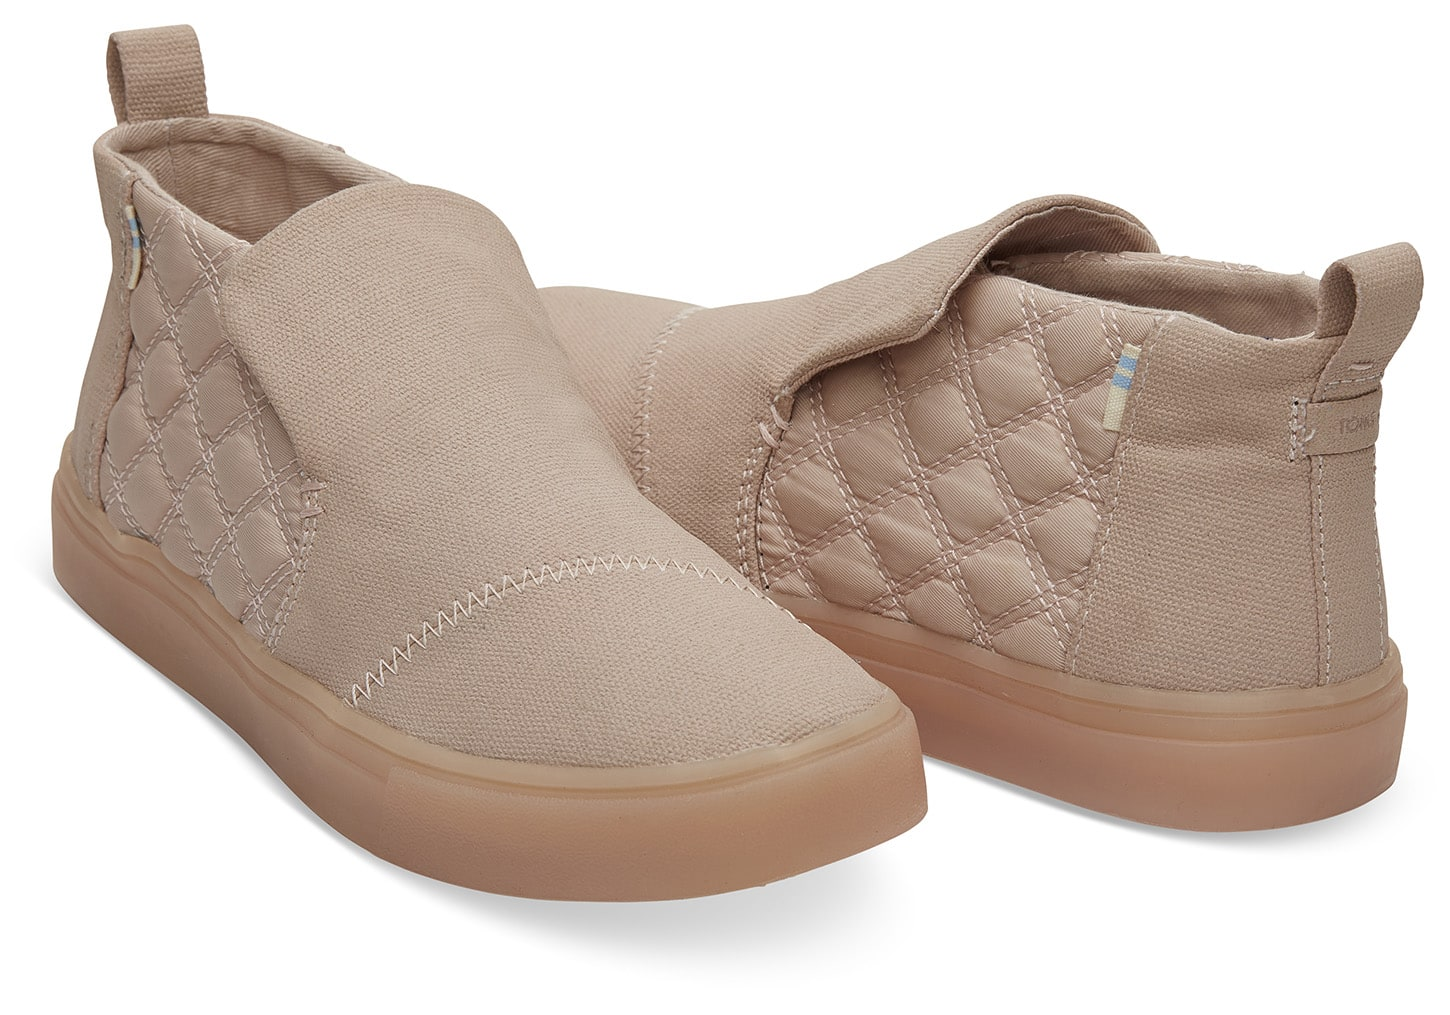 Toms pudrové boty Paxton Dark Blush Textural Canvas/Quilted Nylon Water Resistant - 37